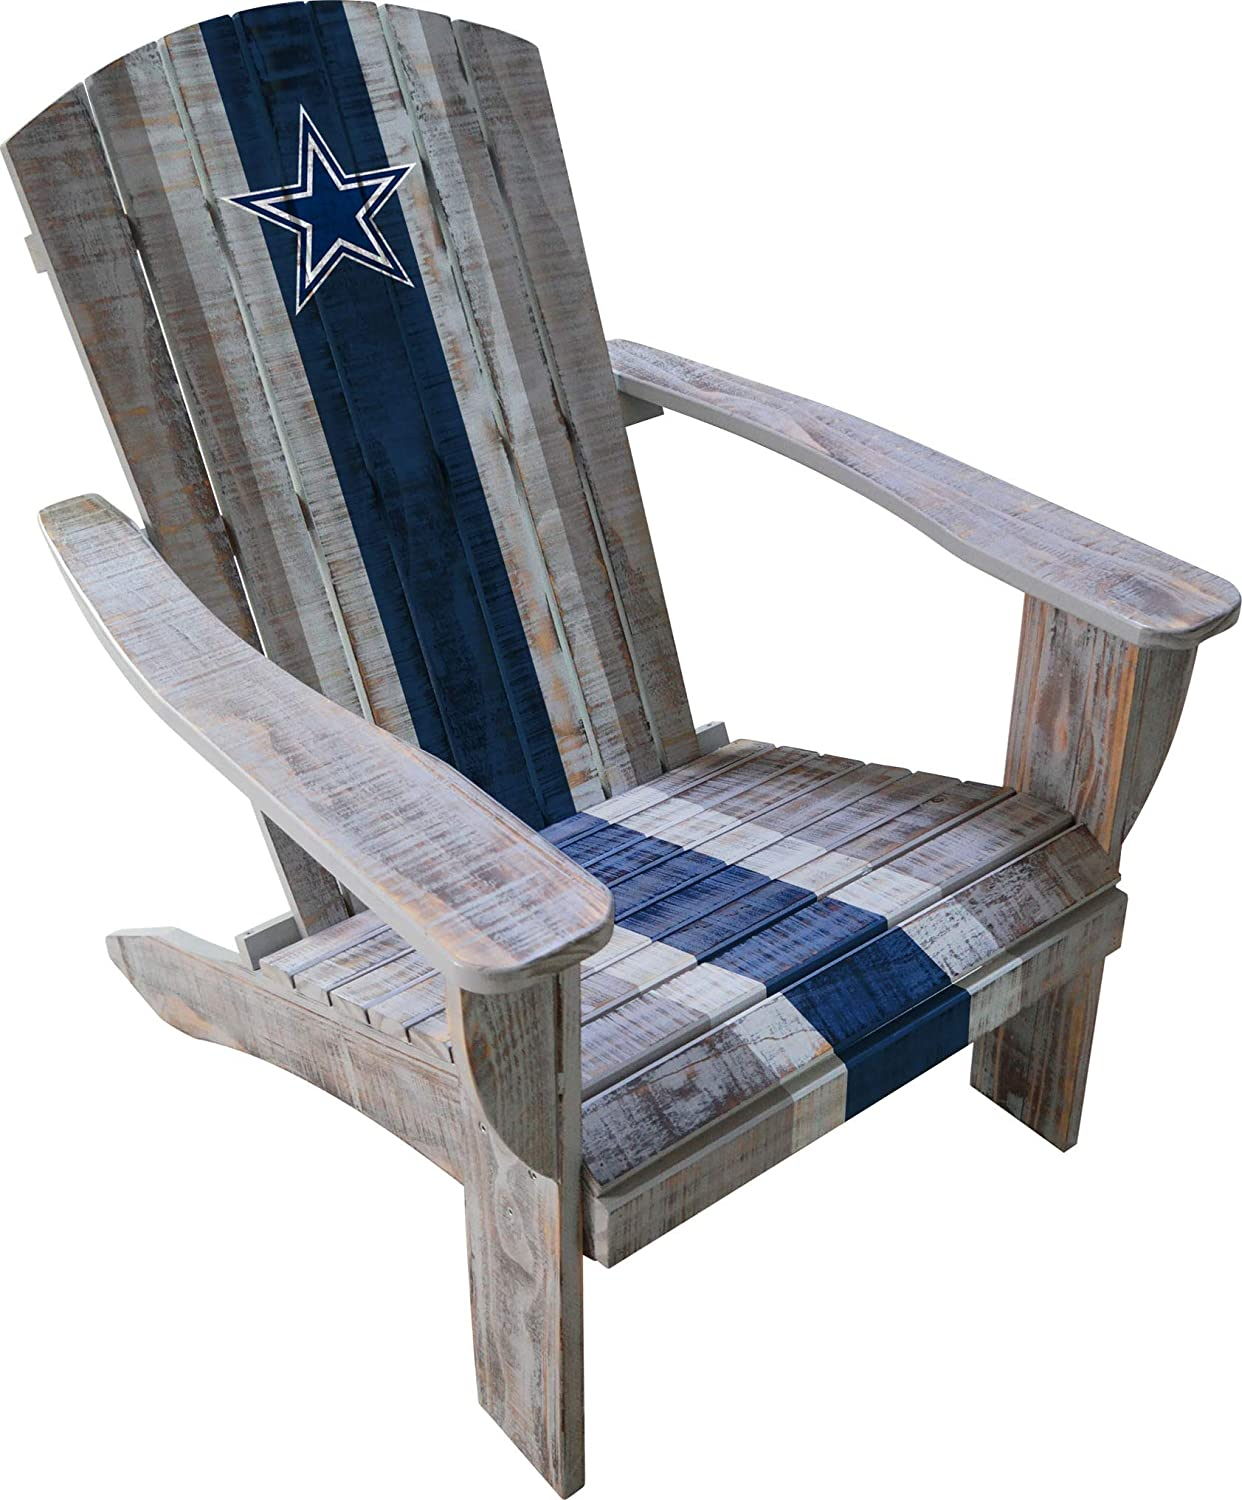 Distressed Adirondack Chair Imperial Officially Licensed NFL Furniture